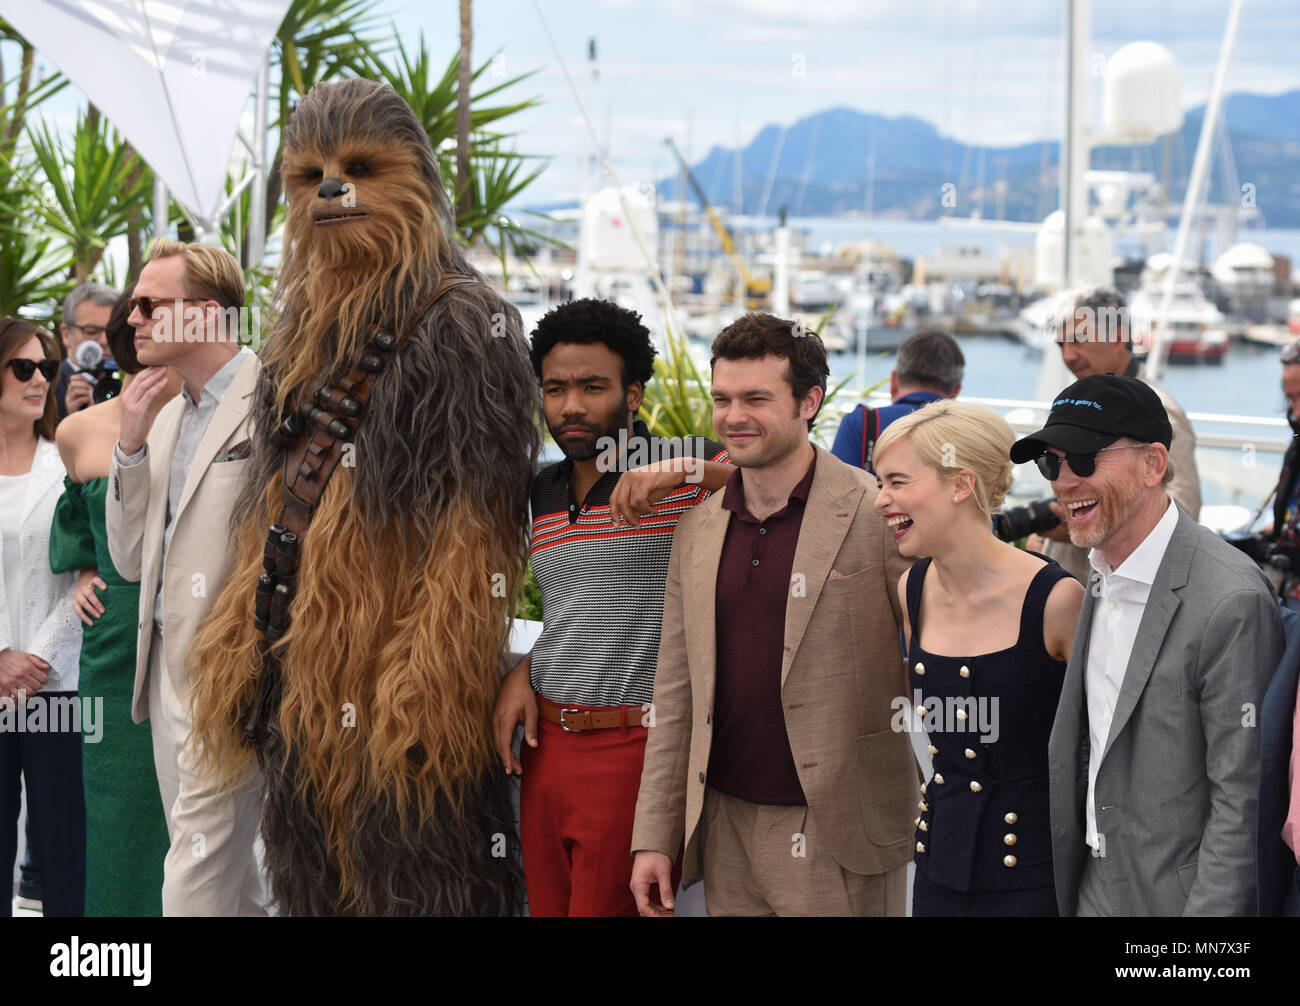 Cannes, France. 15th May, 2018. May 15, 2018 - Cannes, France: Chewbacca, Donald Glover, Alden Ehrenreich, Emilia Clarke, Ron Howard attend the 'Solo: a Star Wars Story' photocall during the 71st Cannes film festival. Credit: Idealink Photography/Alamy Live News - Stock Image